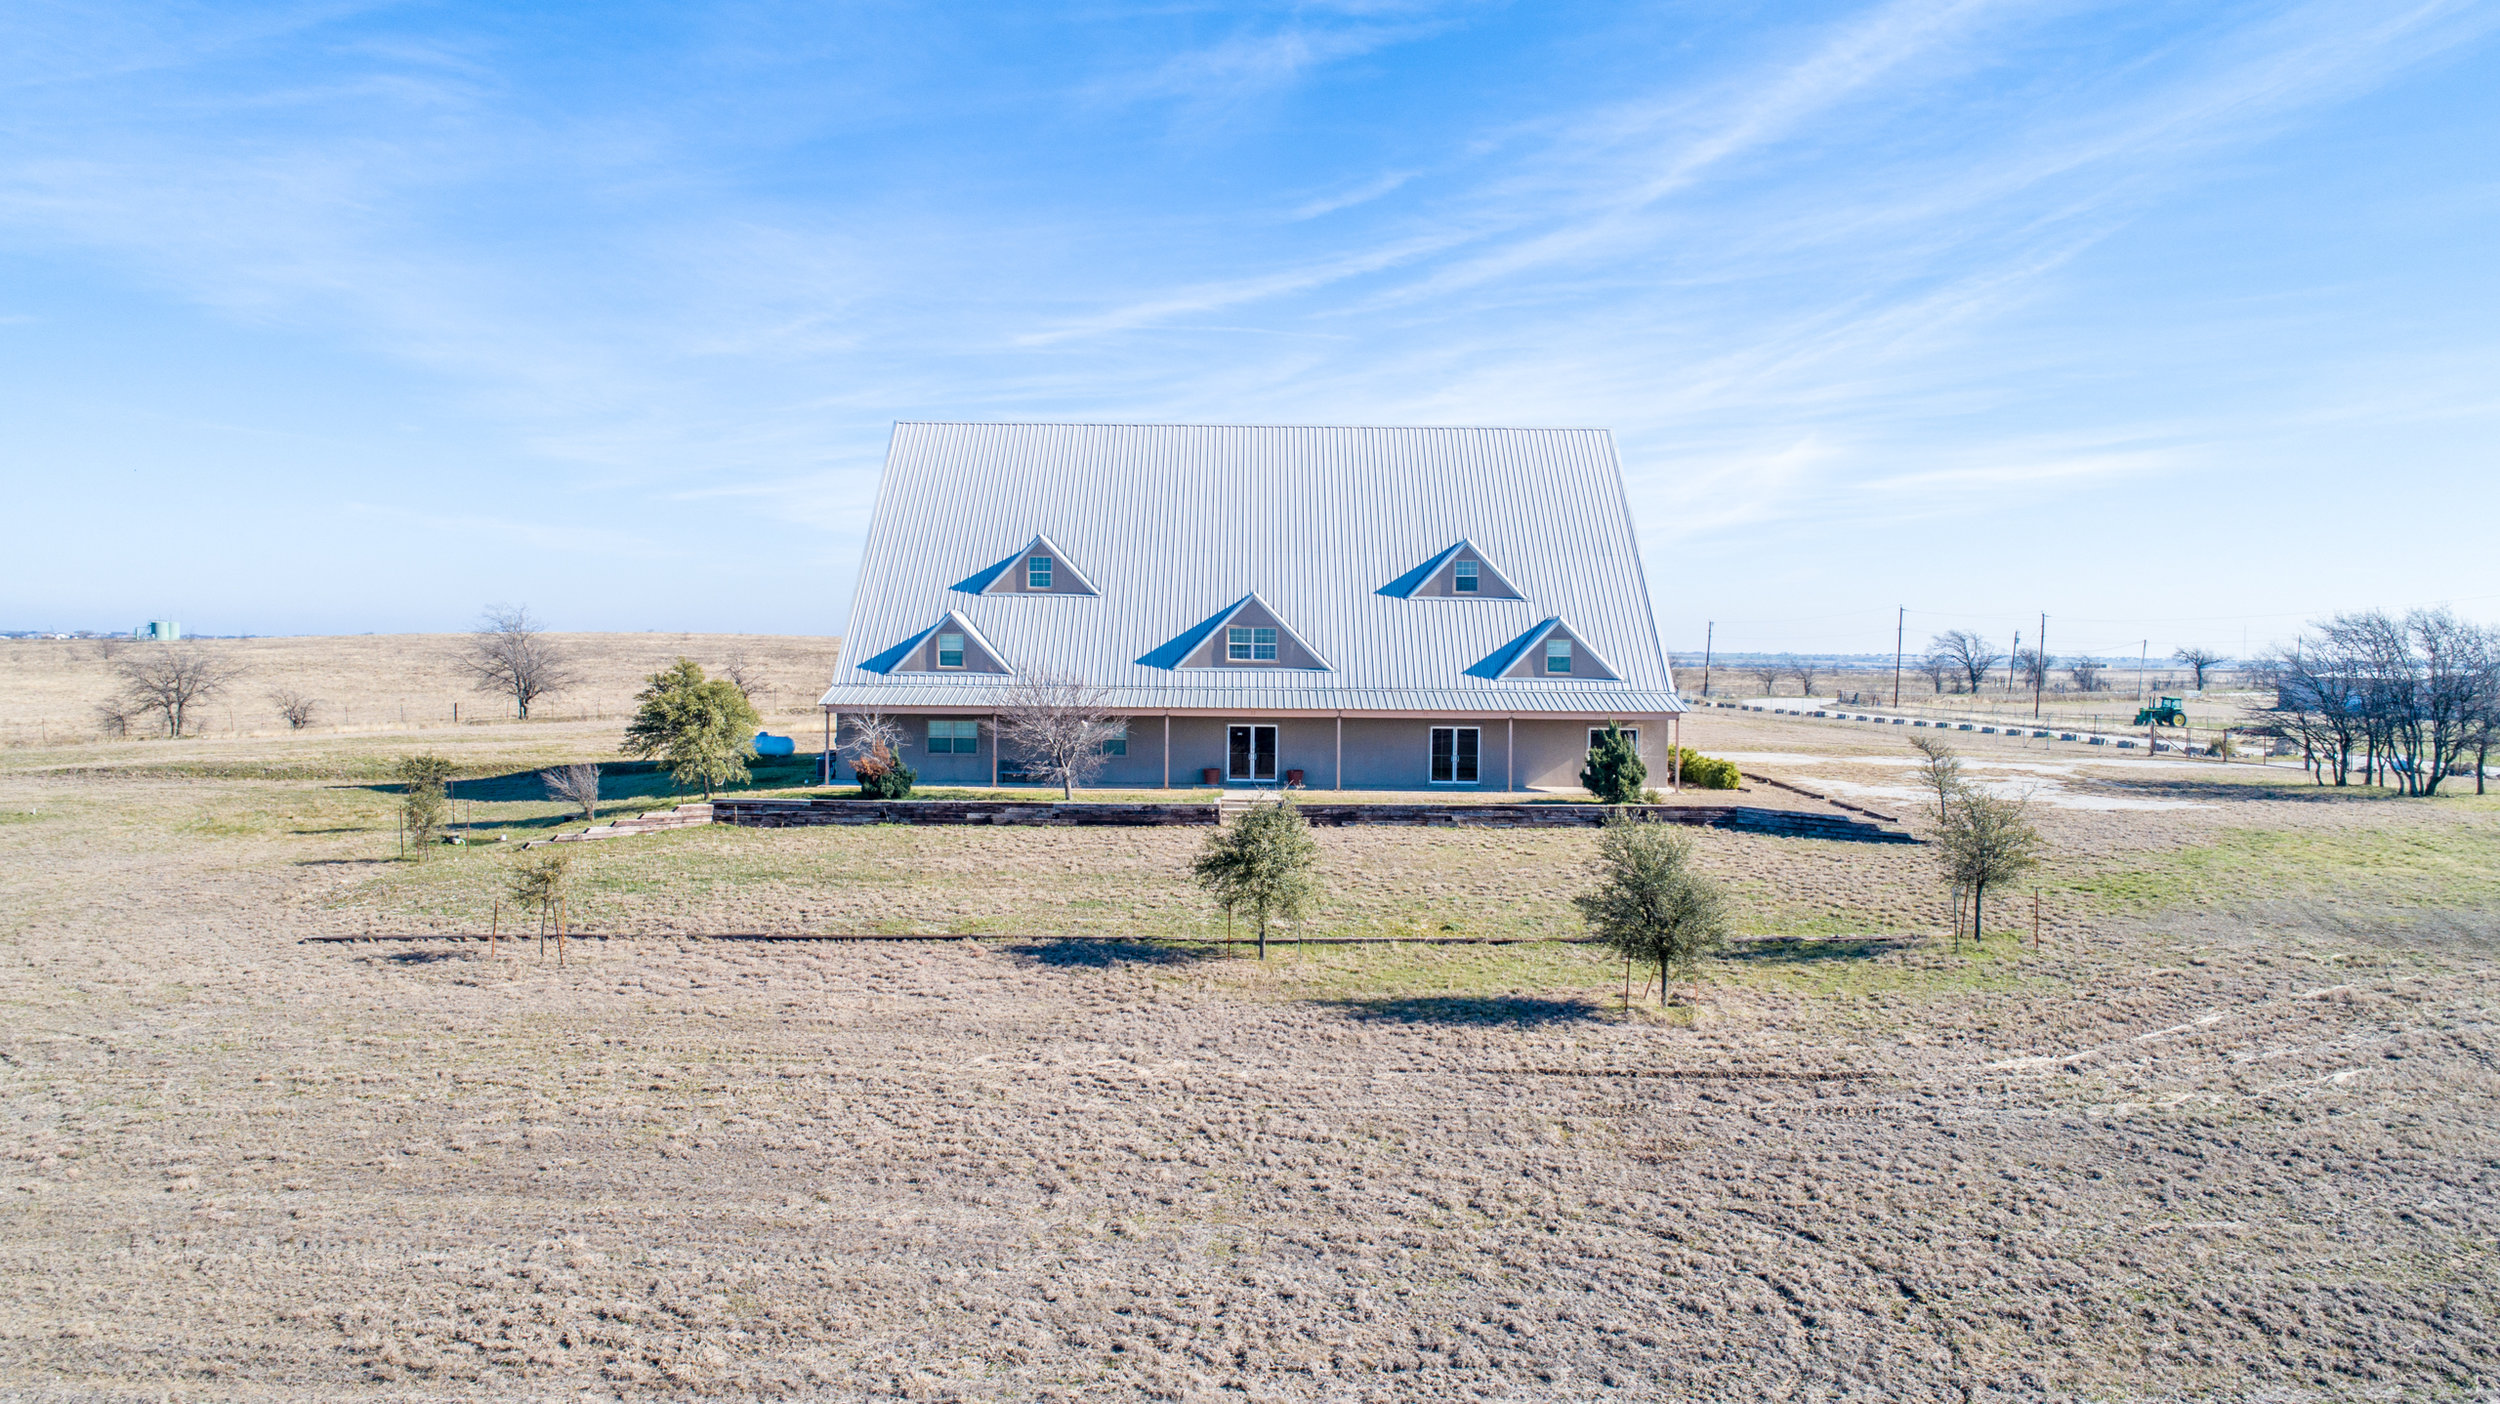 2502 County Road 4421$1,200,000 - MAKE THIS YOUR WORLD WIDE HQ, READY FOR IMMEDIATE OCCUPANCY! This 3 story, 16,000+ sq. ft. building situated on 8.229 acres (room to expand) fronting US-287, is just 5 miles North of the US-287, TX 114 junction (the pathway to the West) coming out of the Metroplex. Phase I ESA completed in December 2018 with no issues and the entire building has just been completed with a rigorous maintenance workup. Floors 1 & 2 offer ample office, meeting, production, storage & distribution options. Third floor is set up for you to finish out. Don't miss out on this unique opportunity. For those who see to the future!John Costas (817) 291-7249